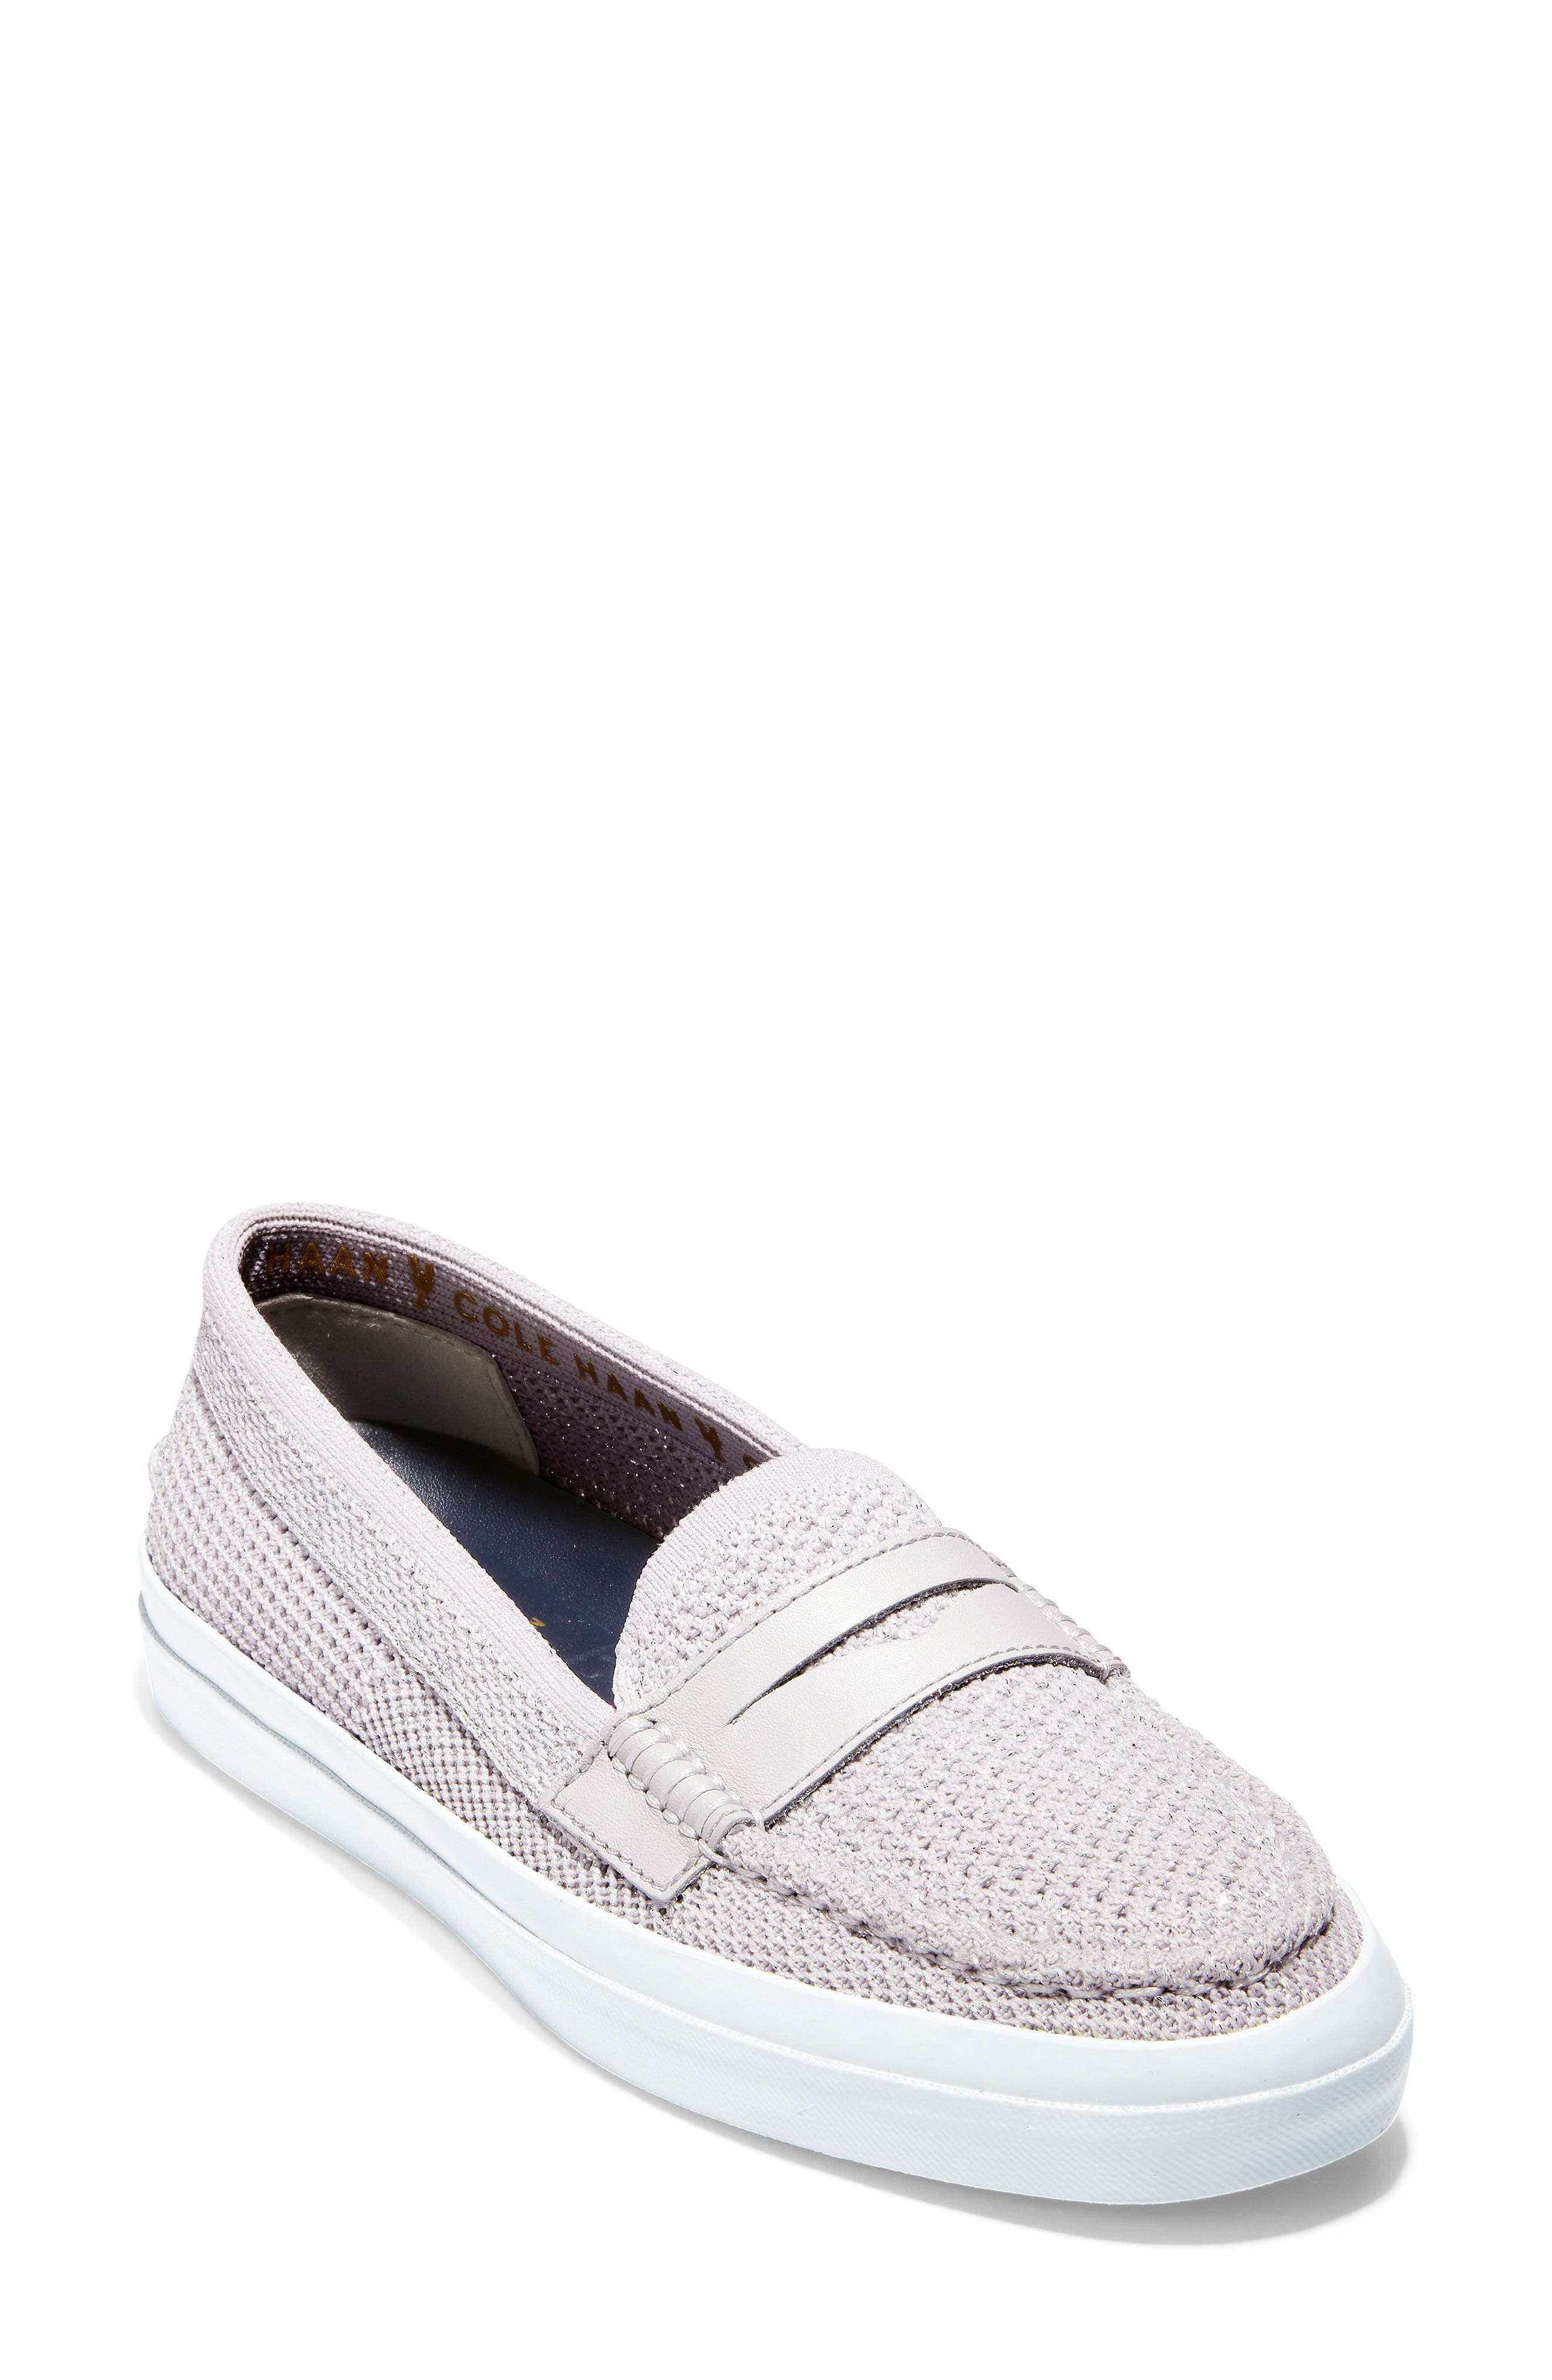 Cole Haan Pinch Stitchlite™ Loafer (Women)